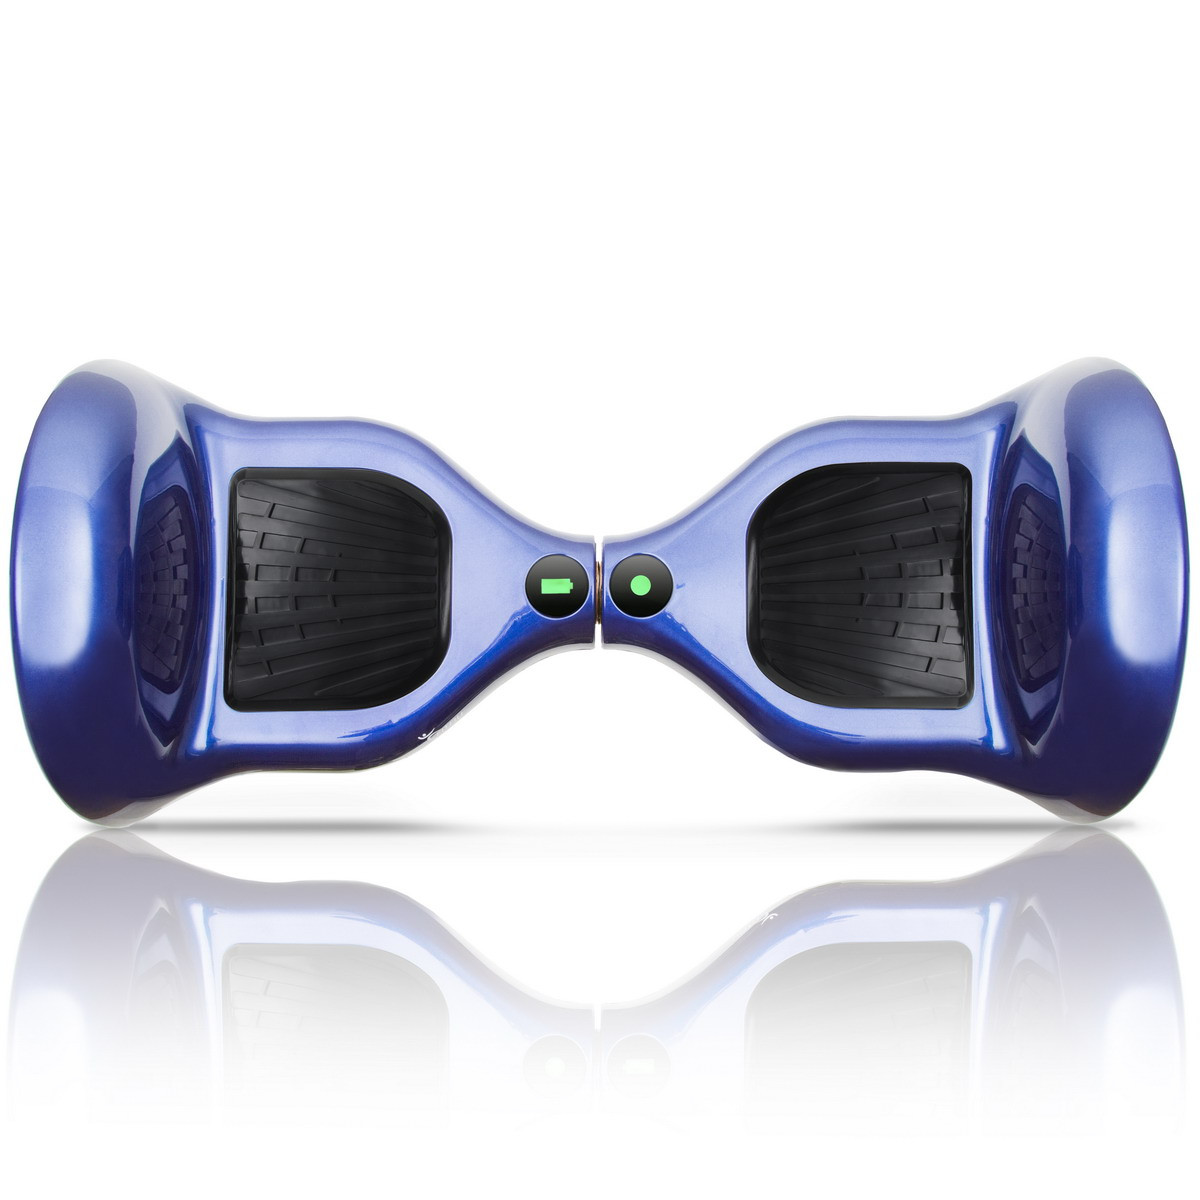 "Patinete Electrico Con Bluetooth Gran Patinete Electrico 10"" Motor 2x500w Con Bluetooth Of 31  Impresionante Patinete Electrico Con Bluetooth"